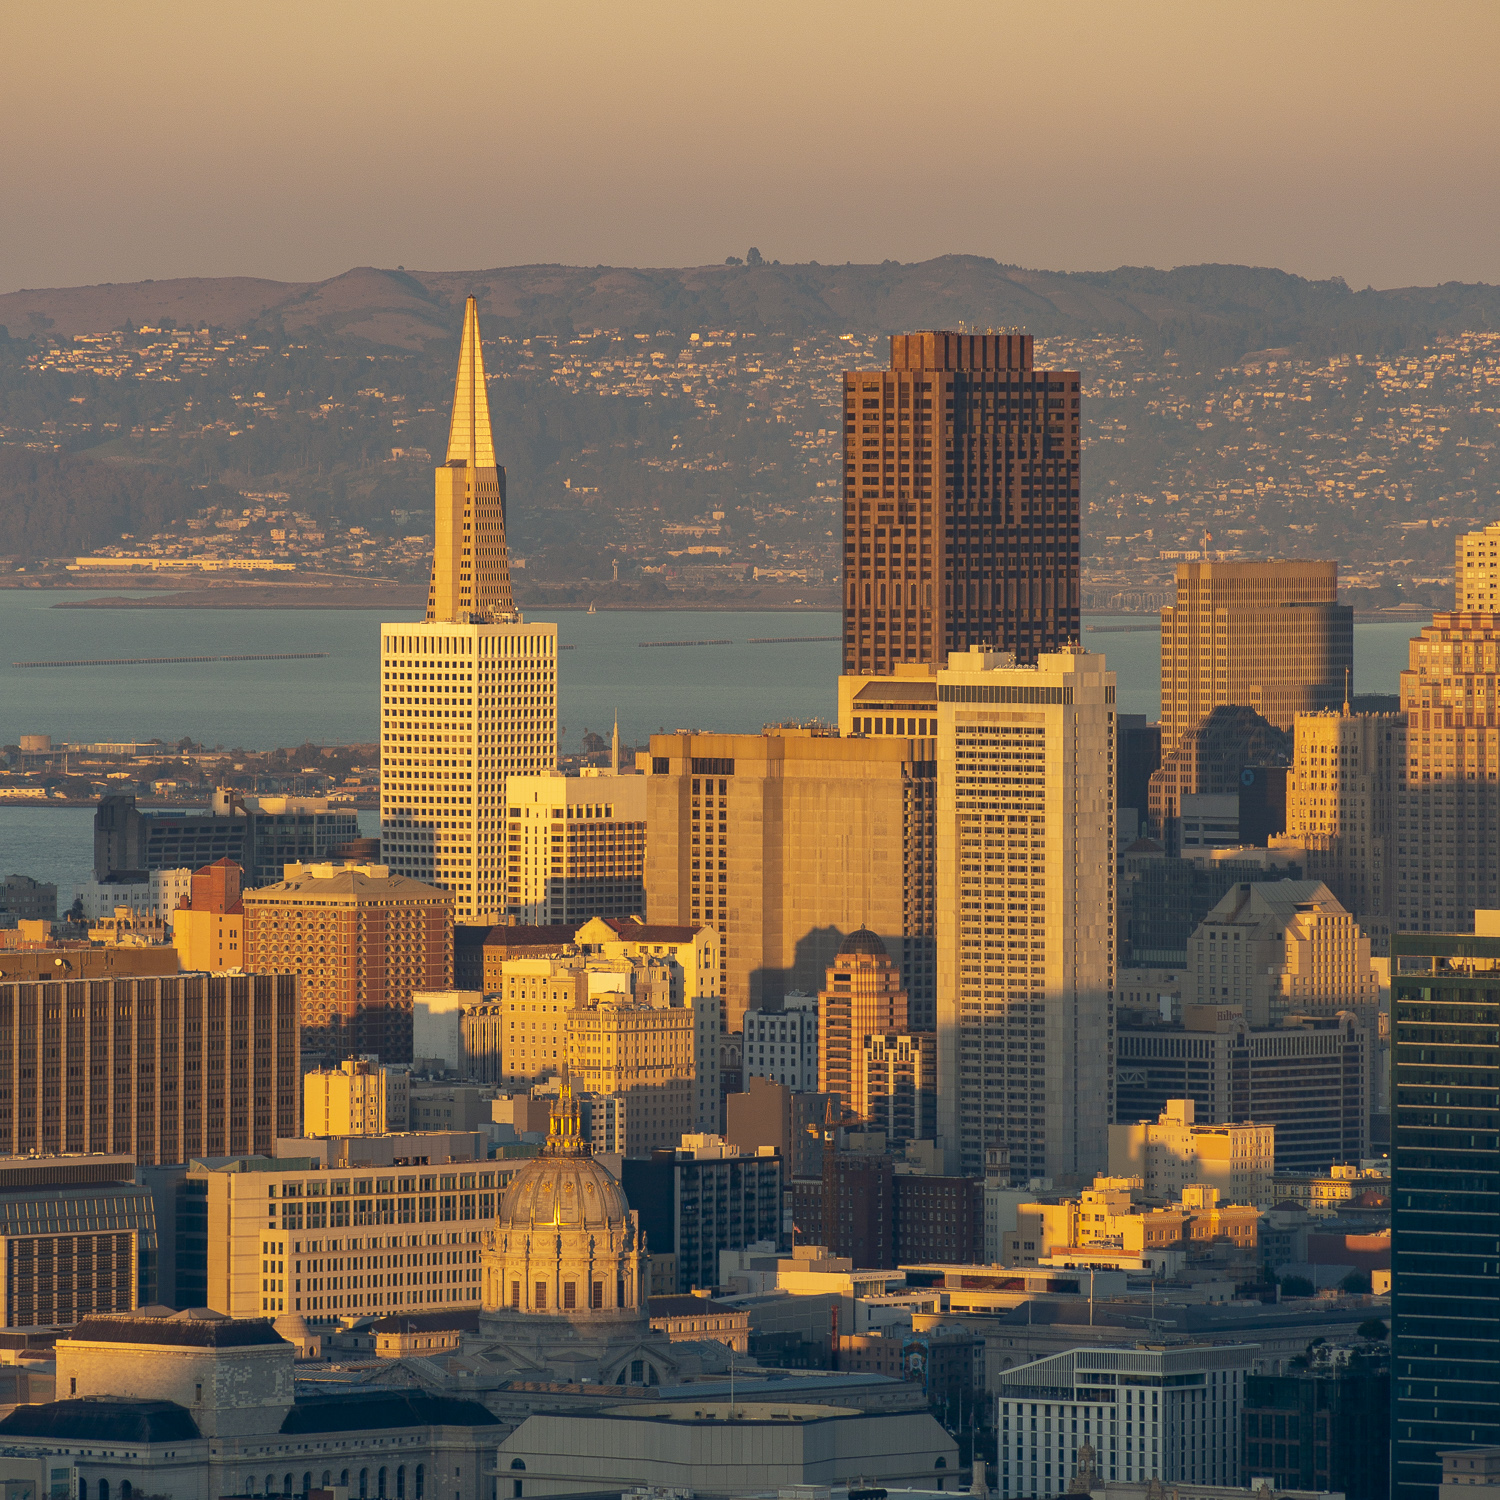 650 California Street seen below the Transamerica Pyramid, image from Twin Peaks, image by Andrew Campbell Nelson